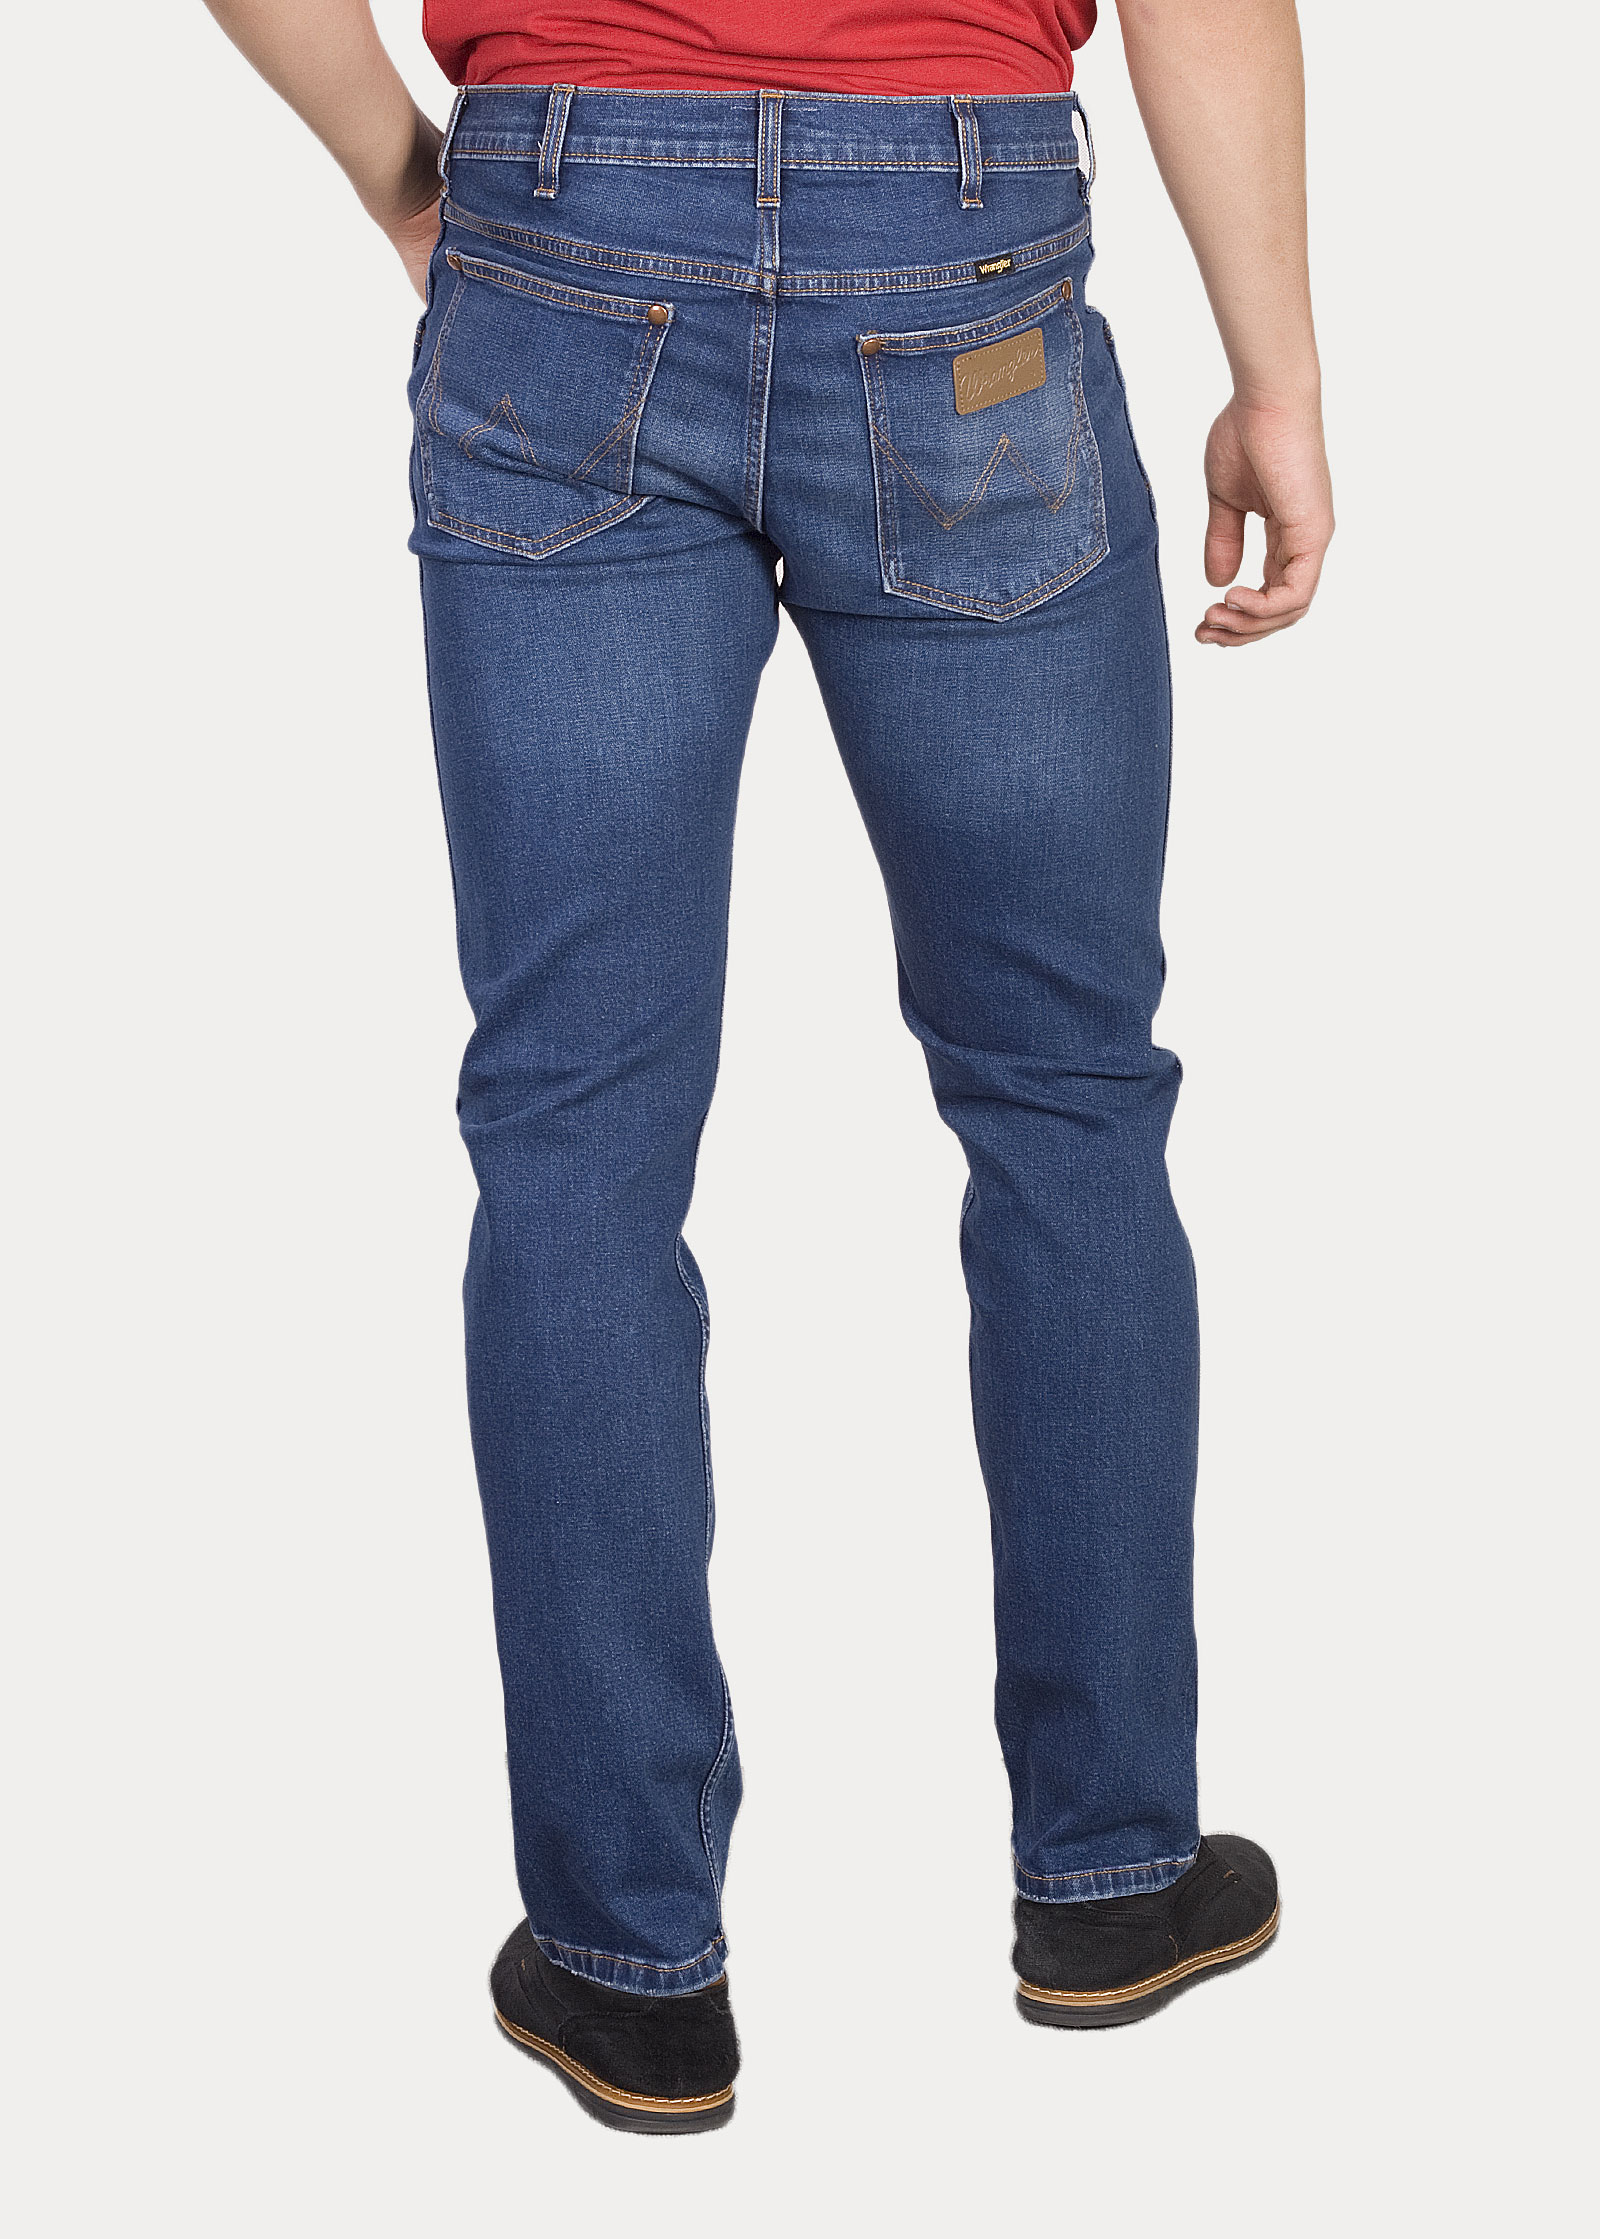 Wrangler® Icons 11MWZ Western Slim Jeans - 1 Year - elements